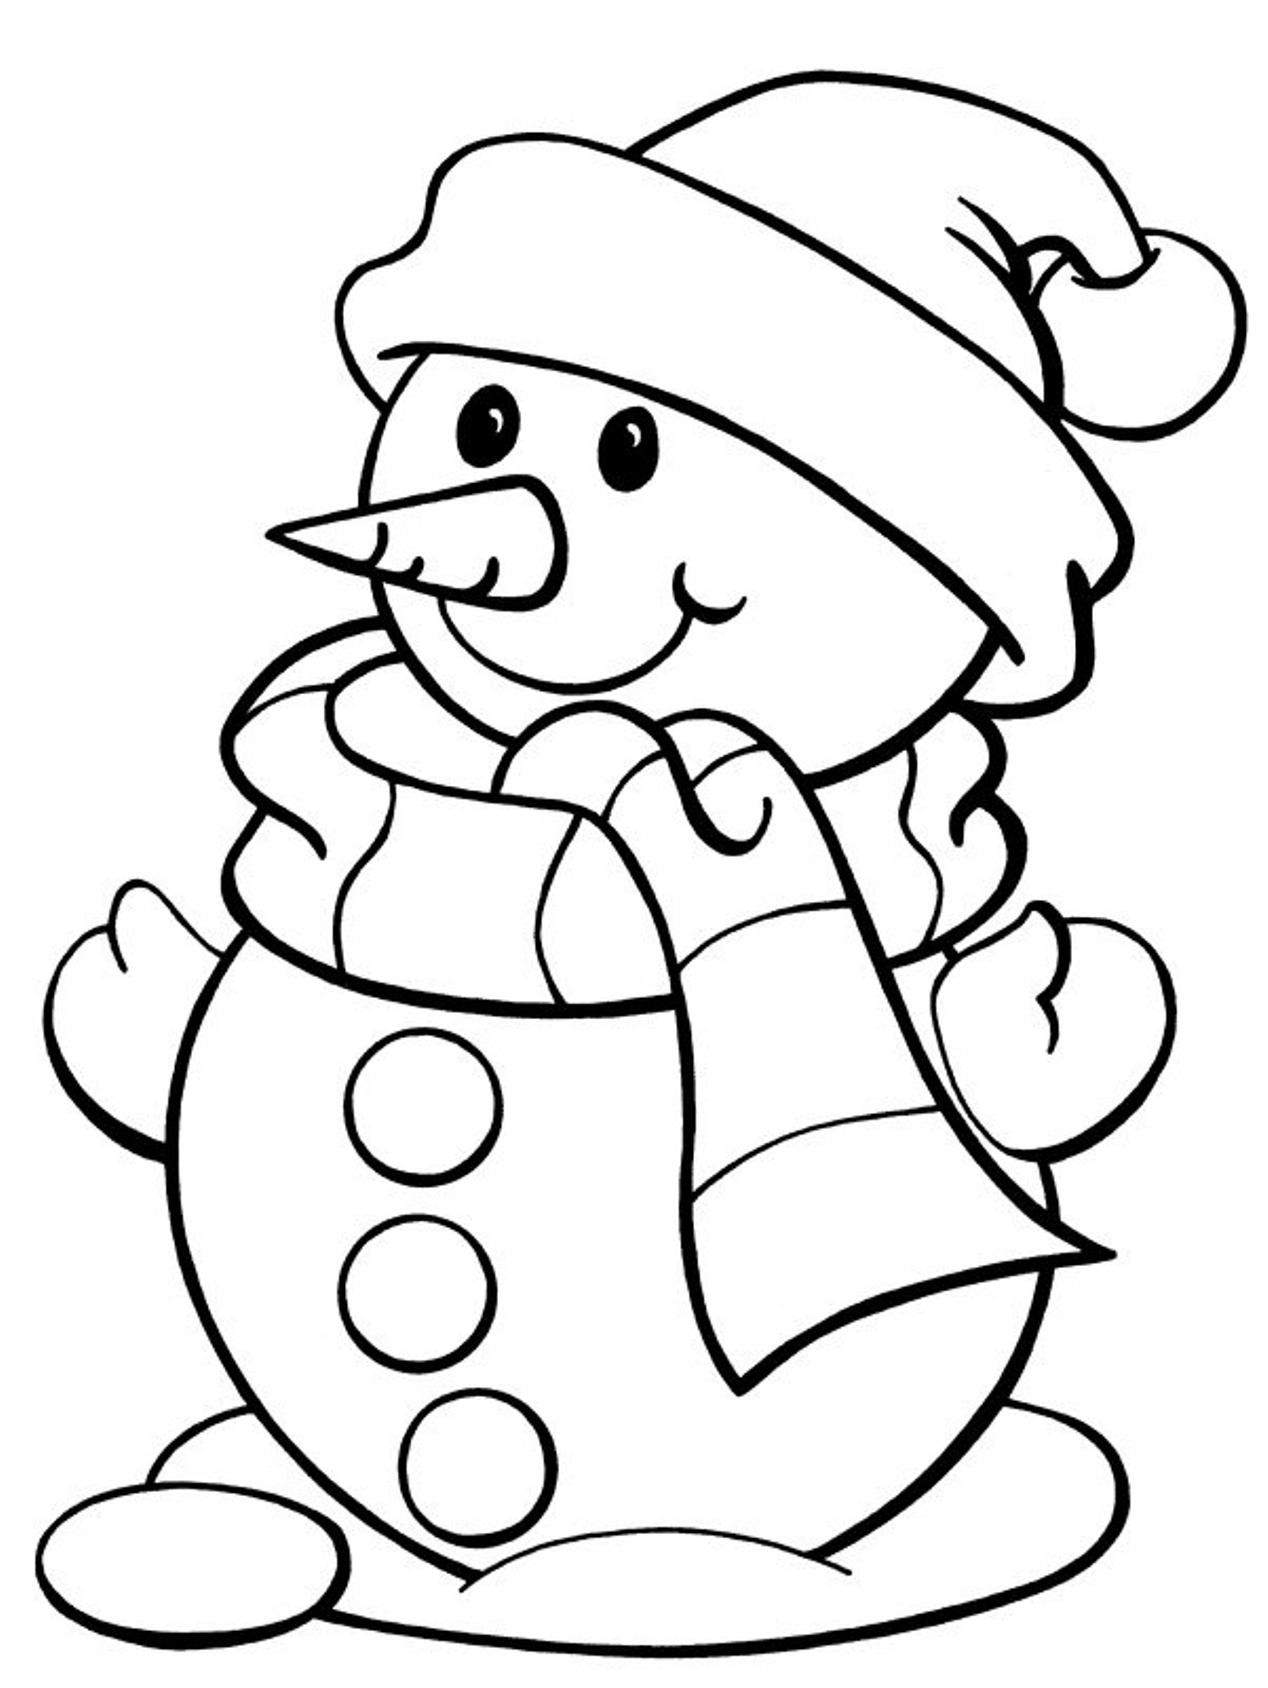 November Color Pages Winter Coloring Pages To Download And Print For Free